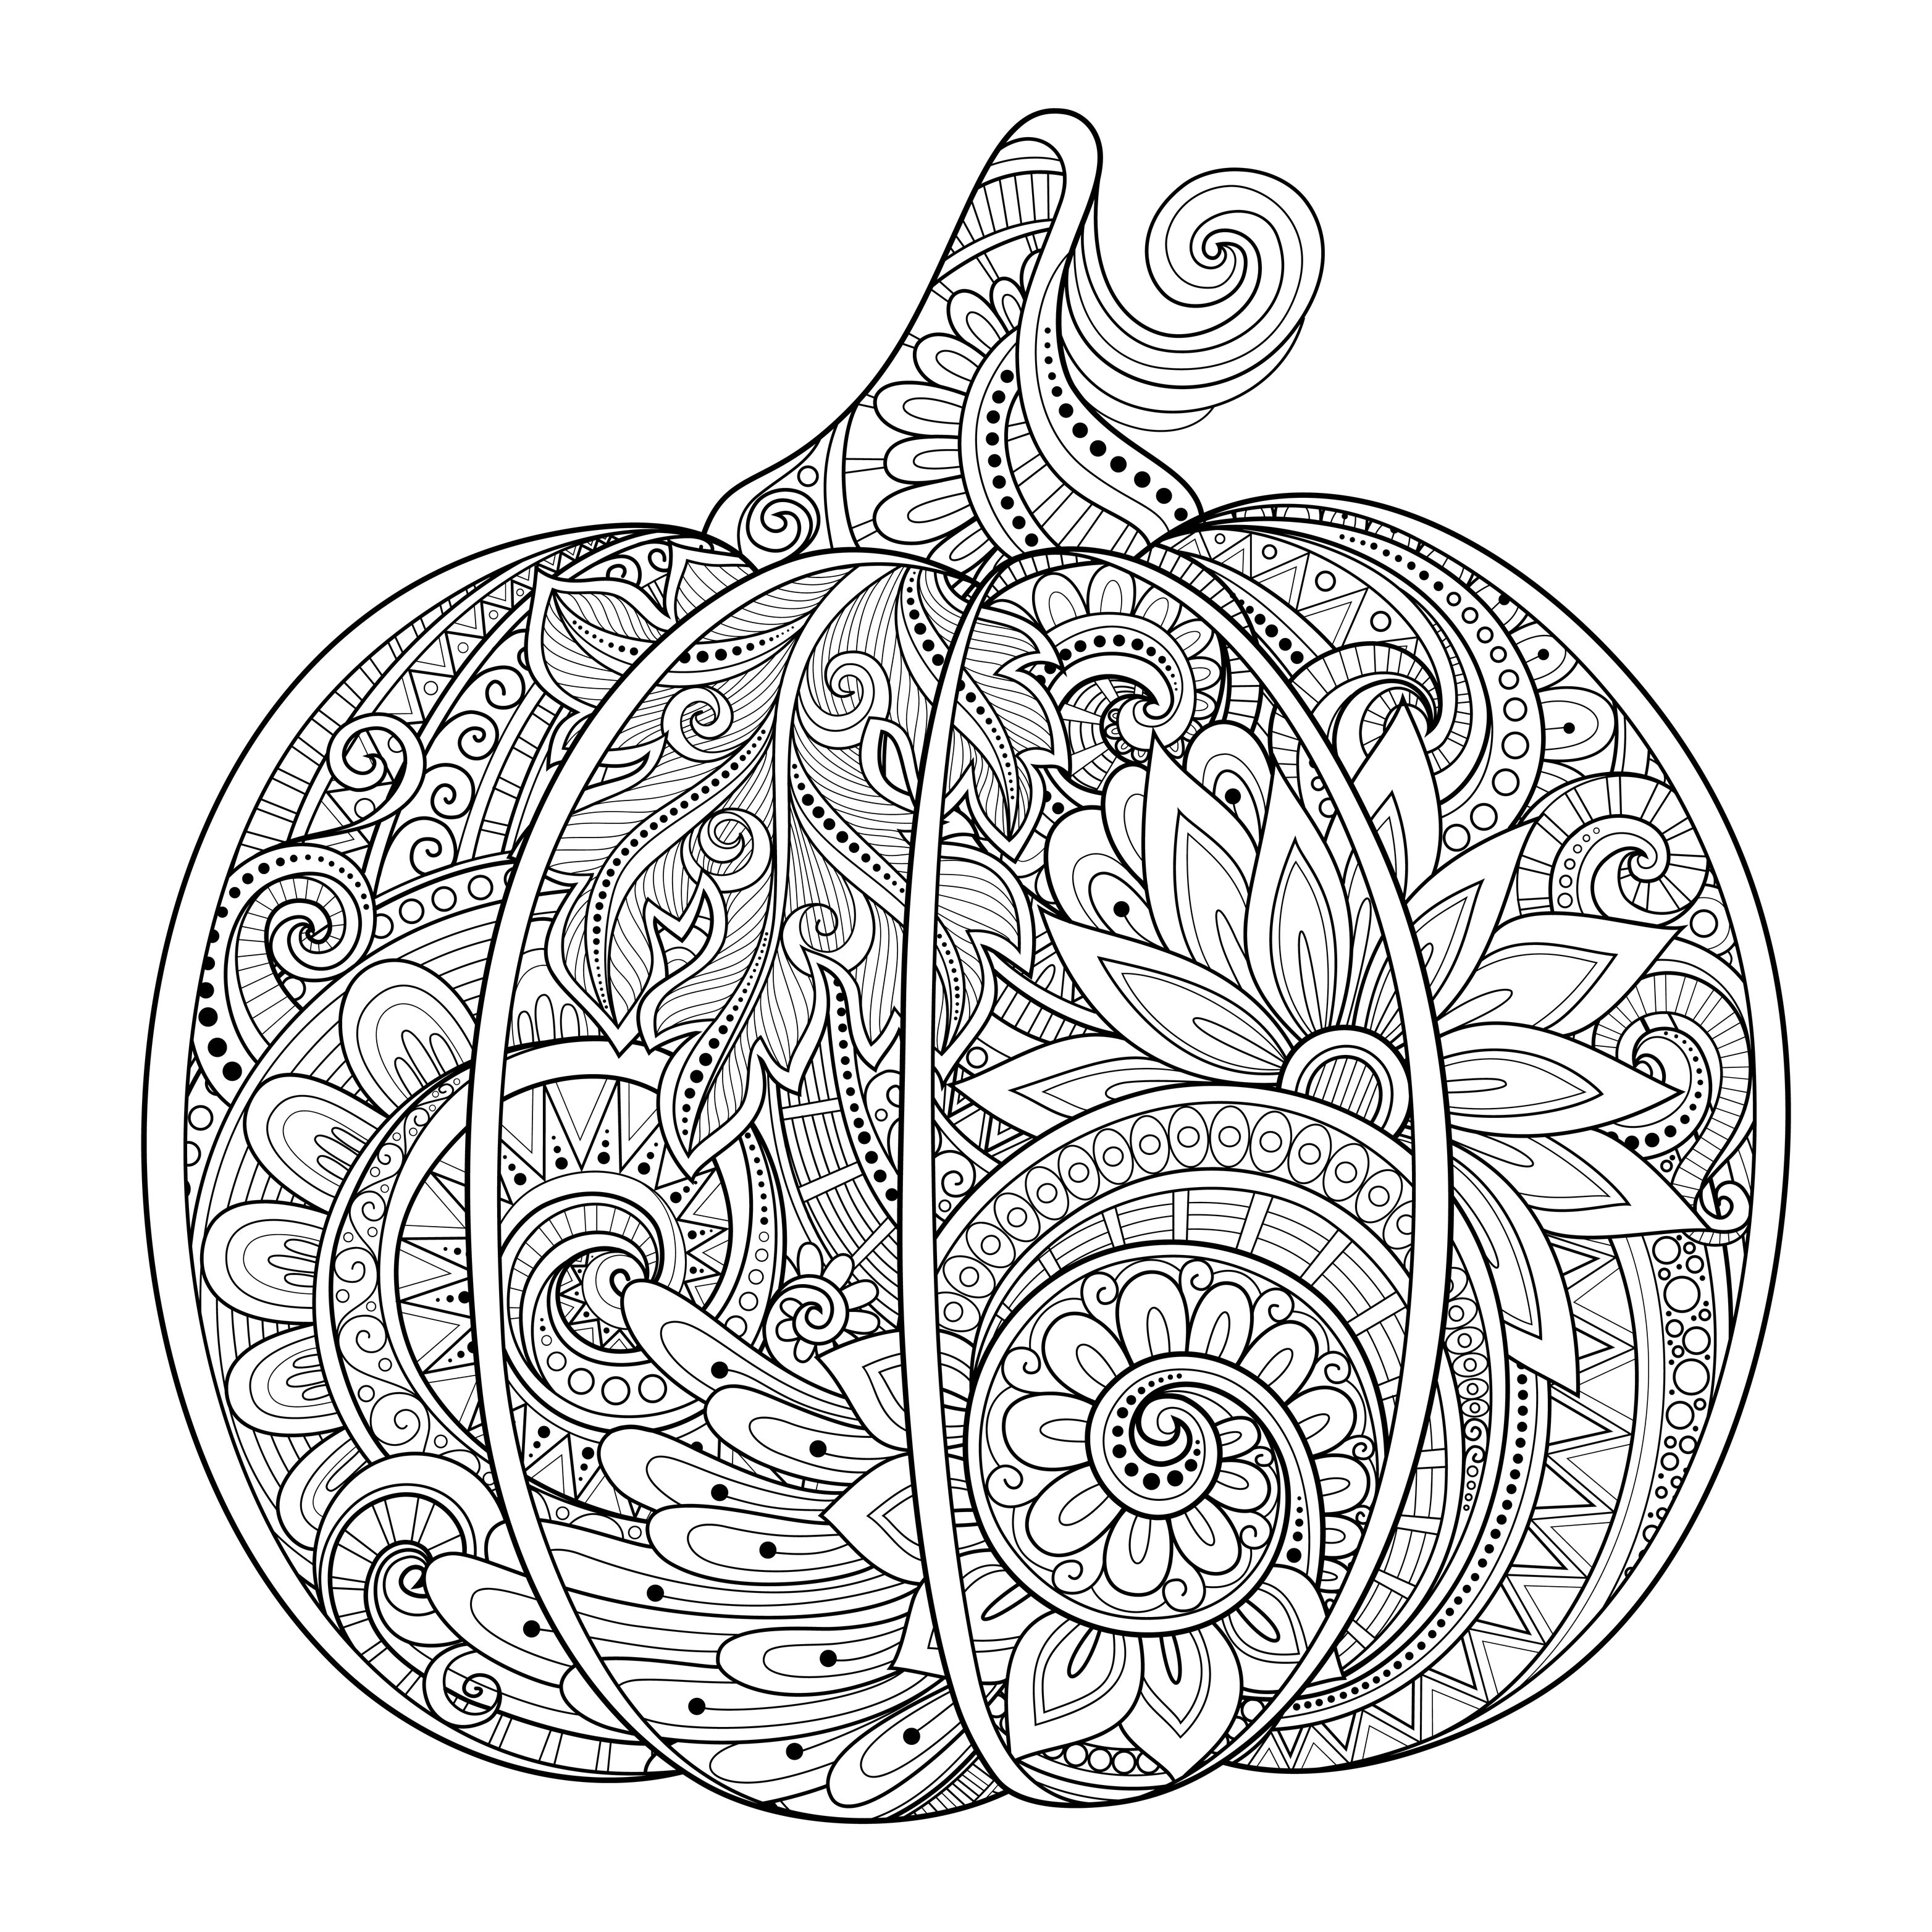 Fall Mandala Coloring Pages at GetDrawings.com | Free for personal ...